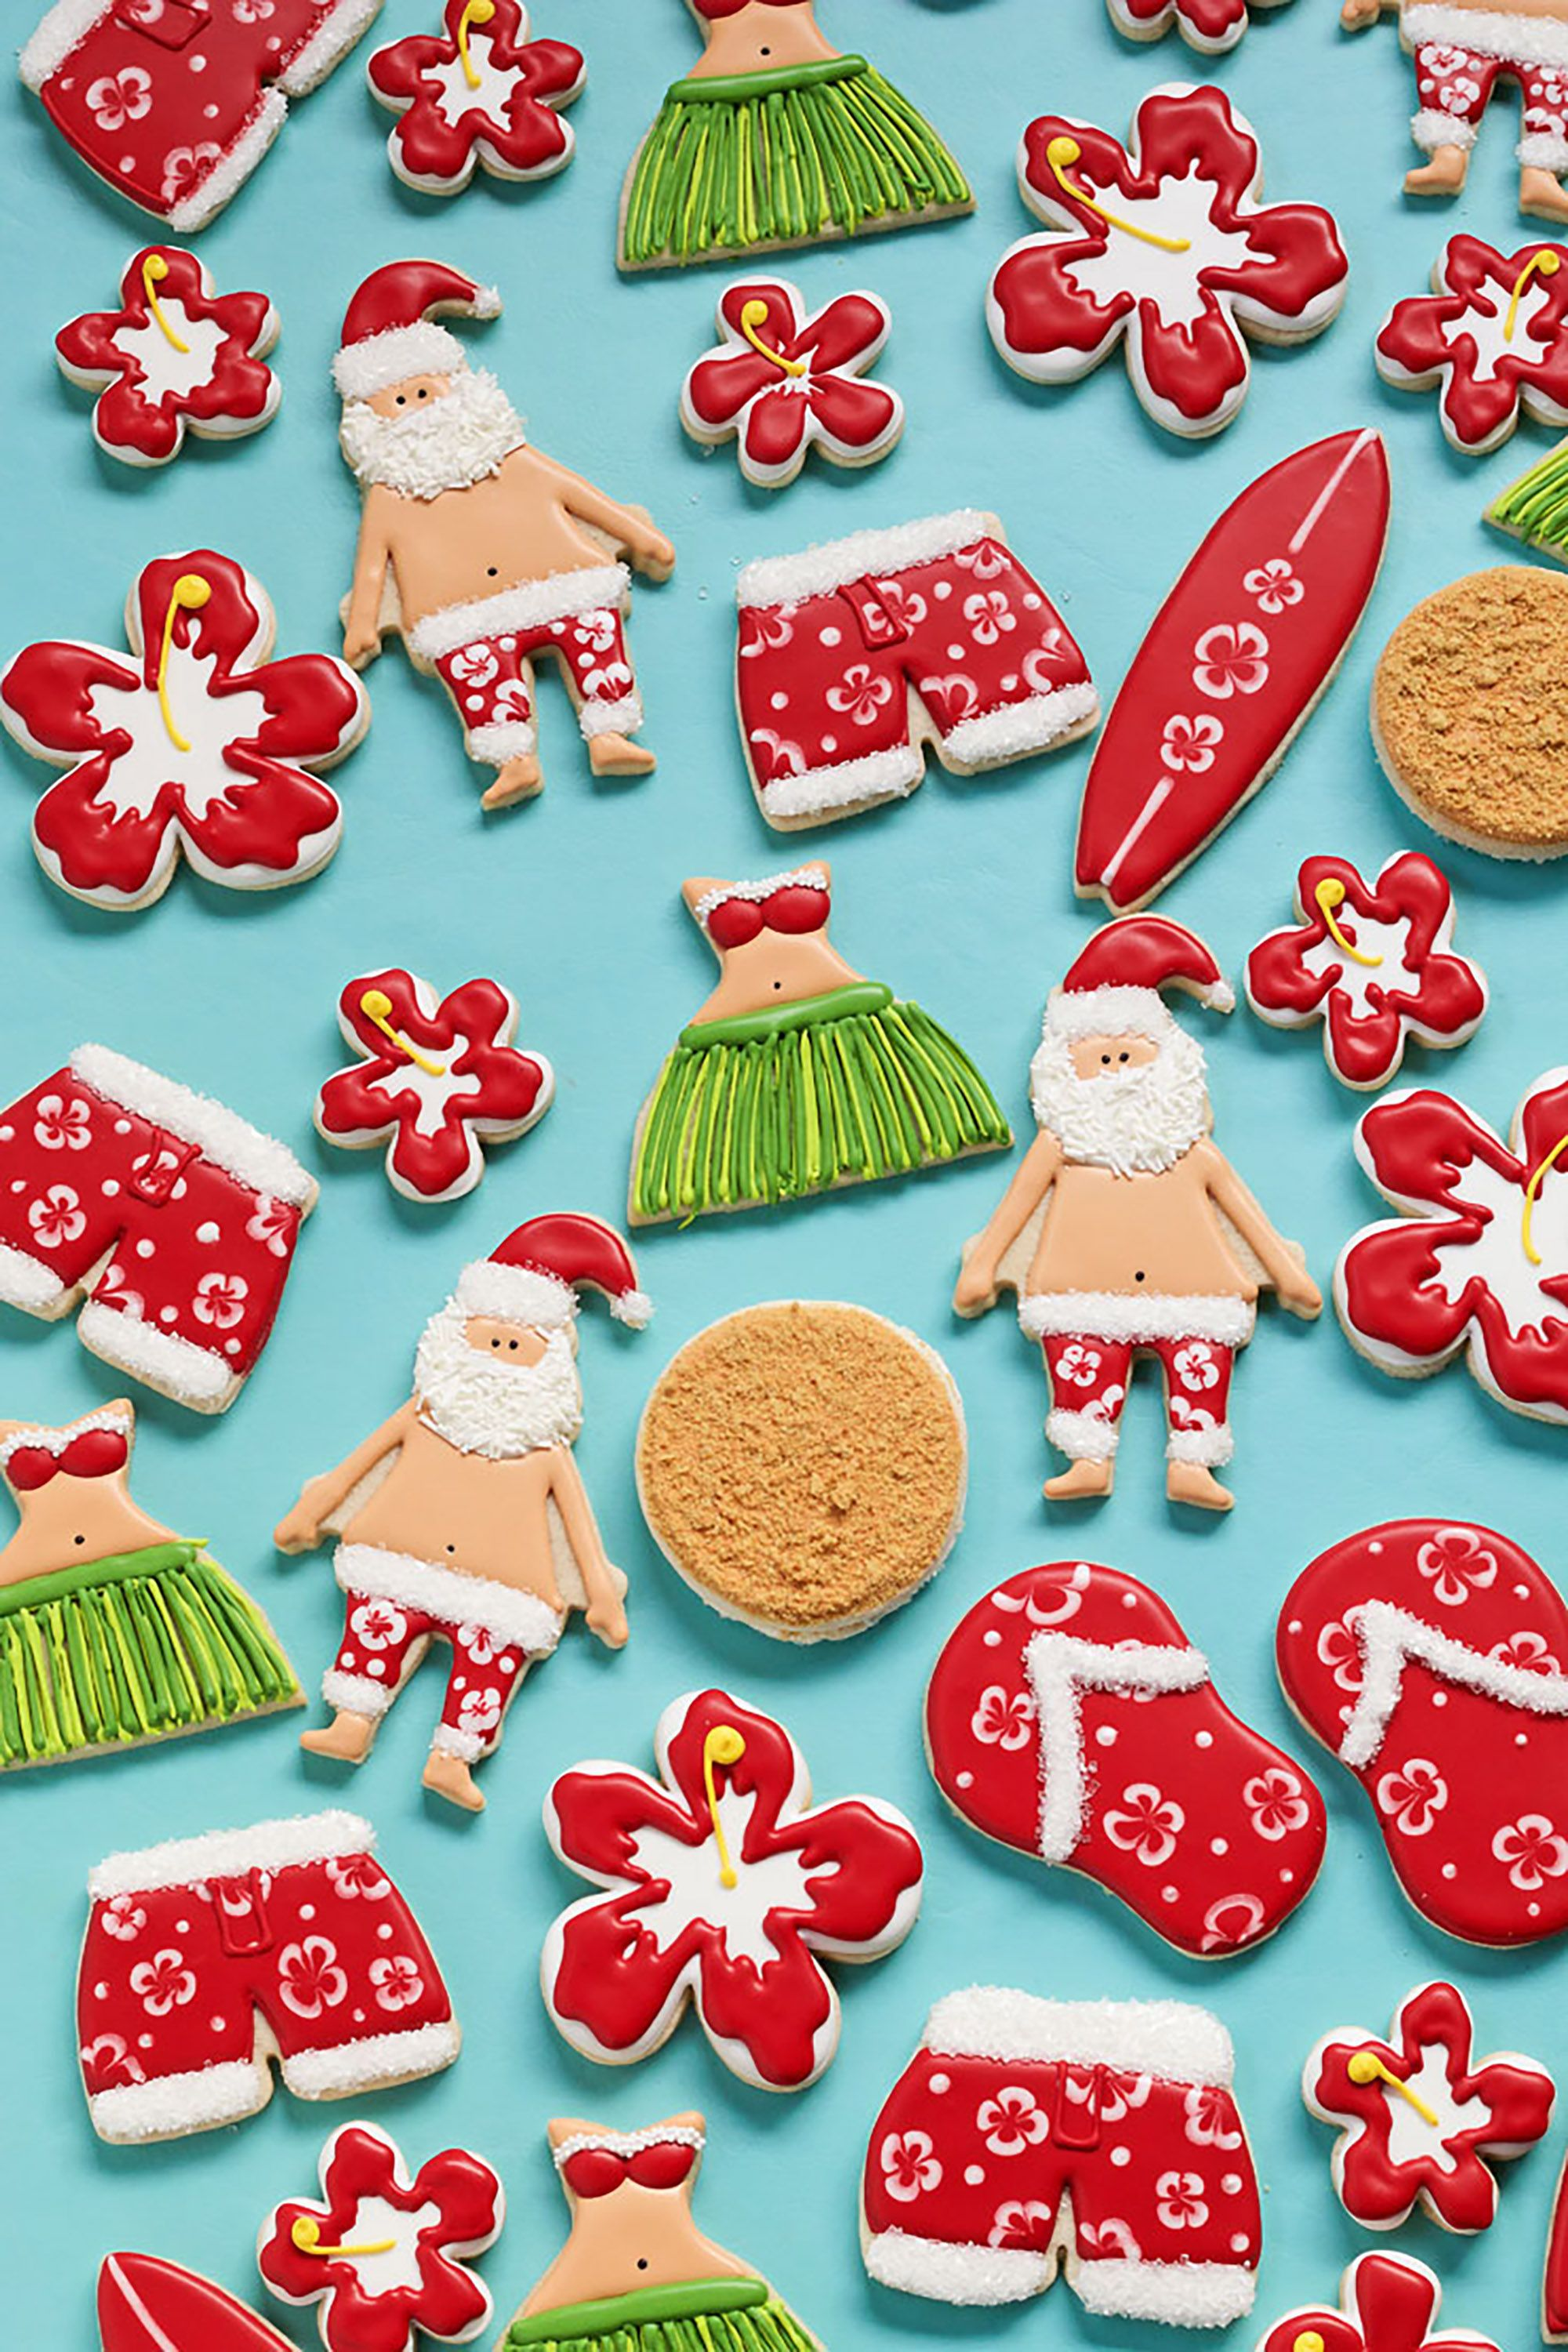 Christmas In July Themed Food.30 Fun Family Christmas Party Ideas Holiday Party Food And